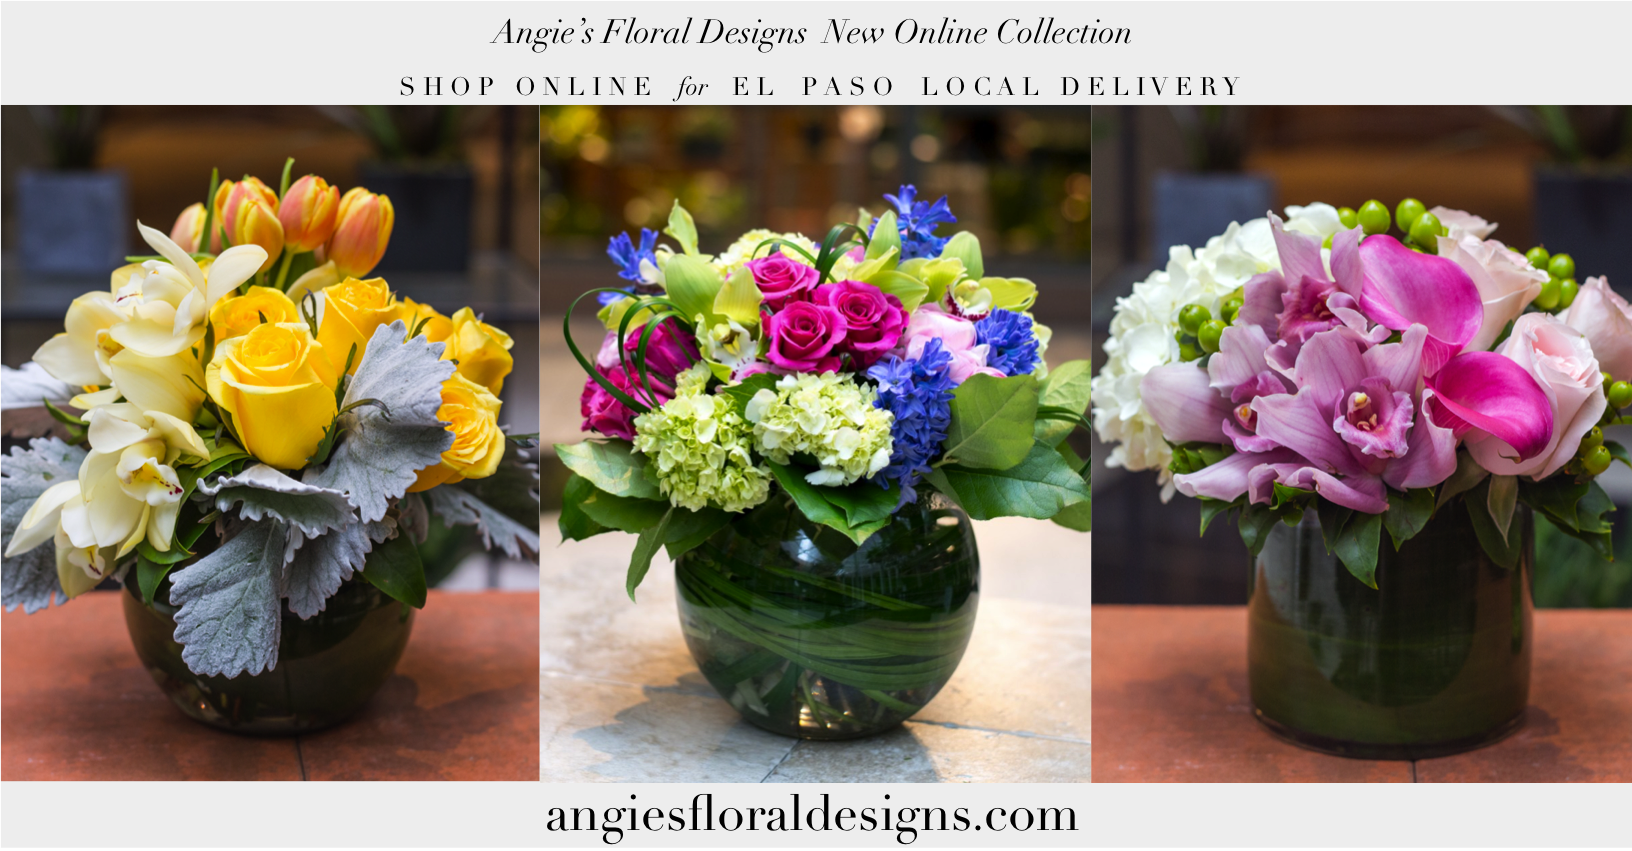 -angiess-floral-designs-el-paso-texas-florist-79912-flowers-angies-flowers-el-paso-texas-79912-el-paso-florist-.png